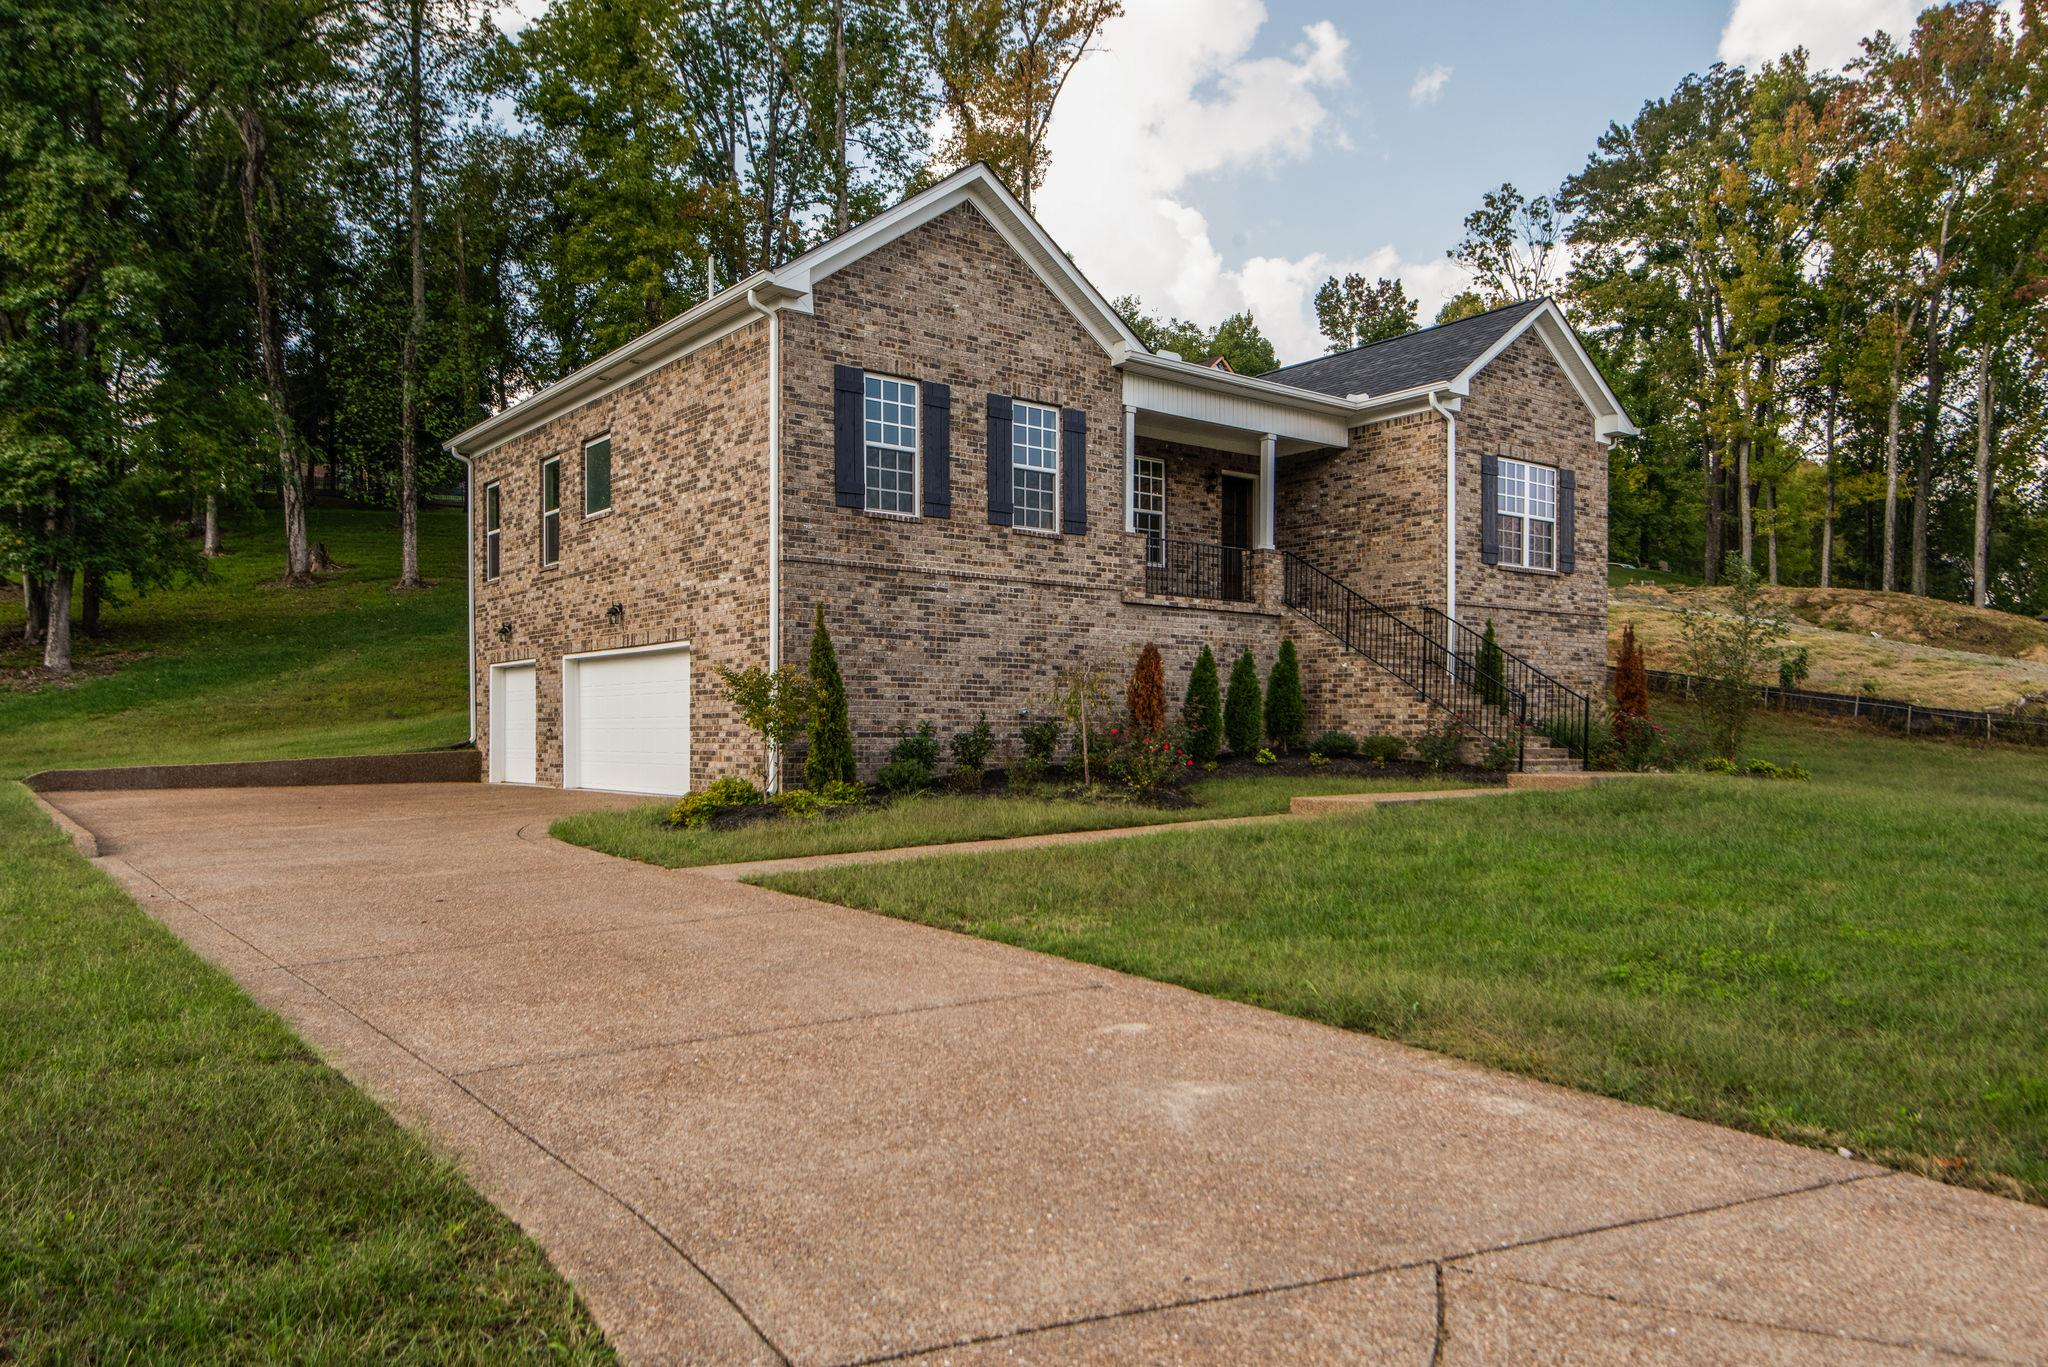 Mount Juliet New Construction Homes For Sale - Wilson County TN